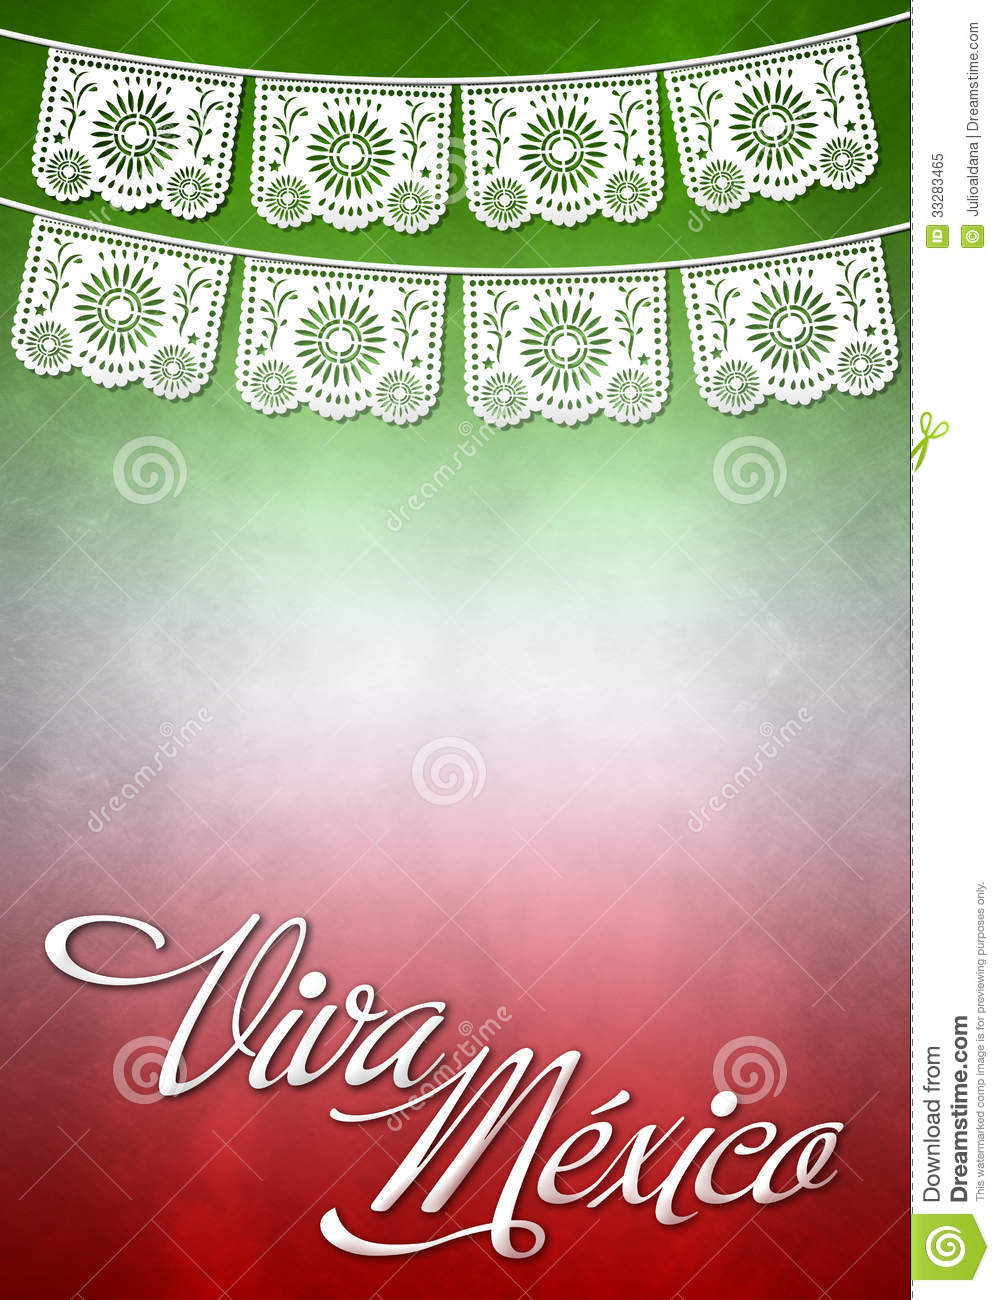 Party decorations mexican fiesta party and mexican fiesta decorations - Viva Mexico Poster Mexican Paper Decoration Royalty Free